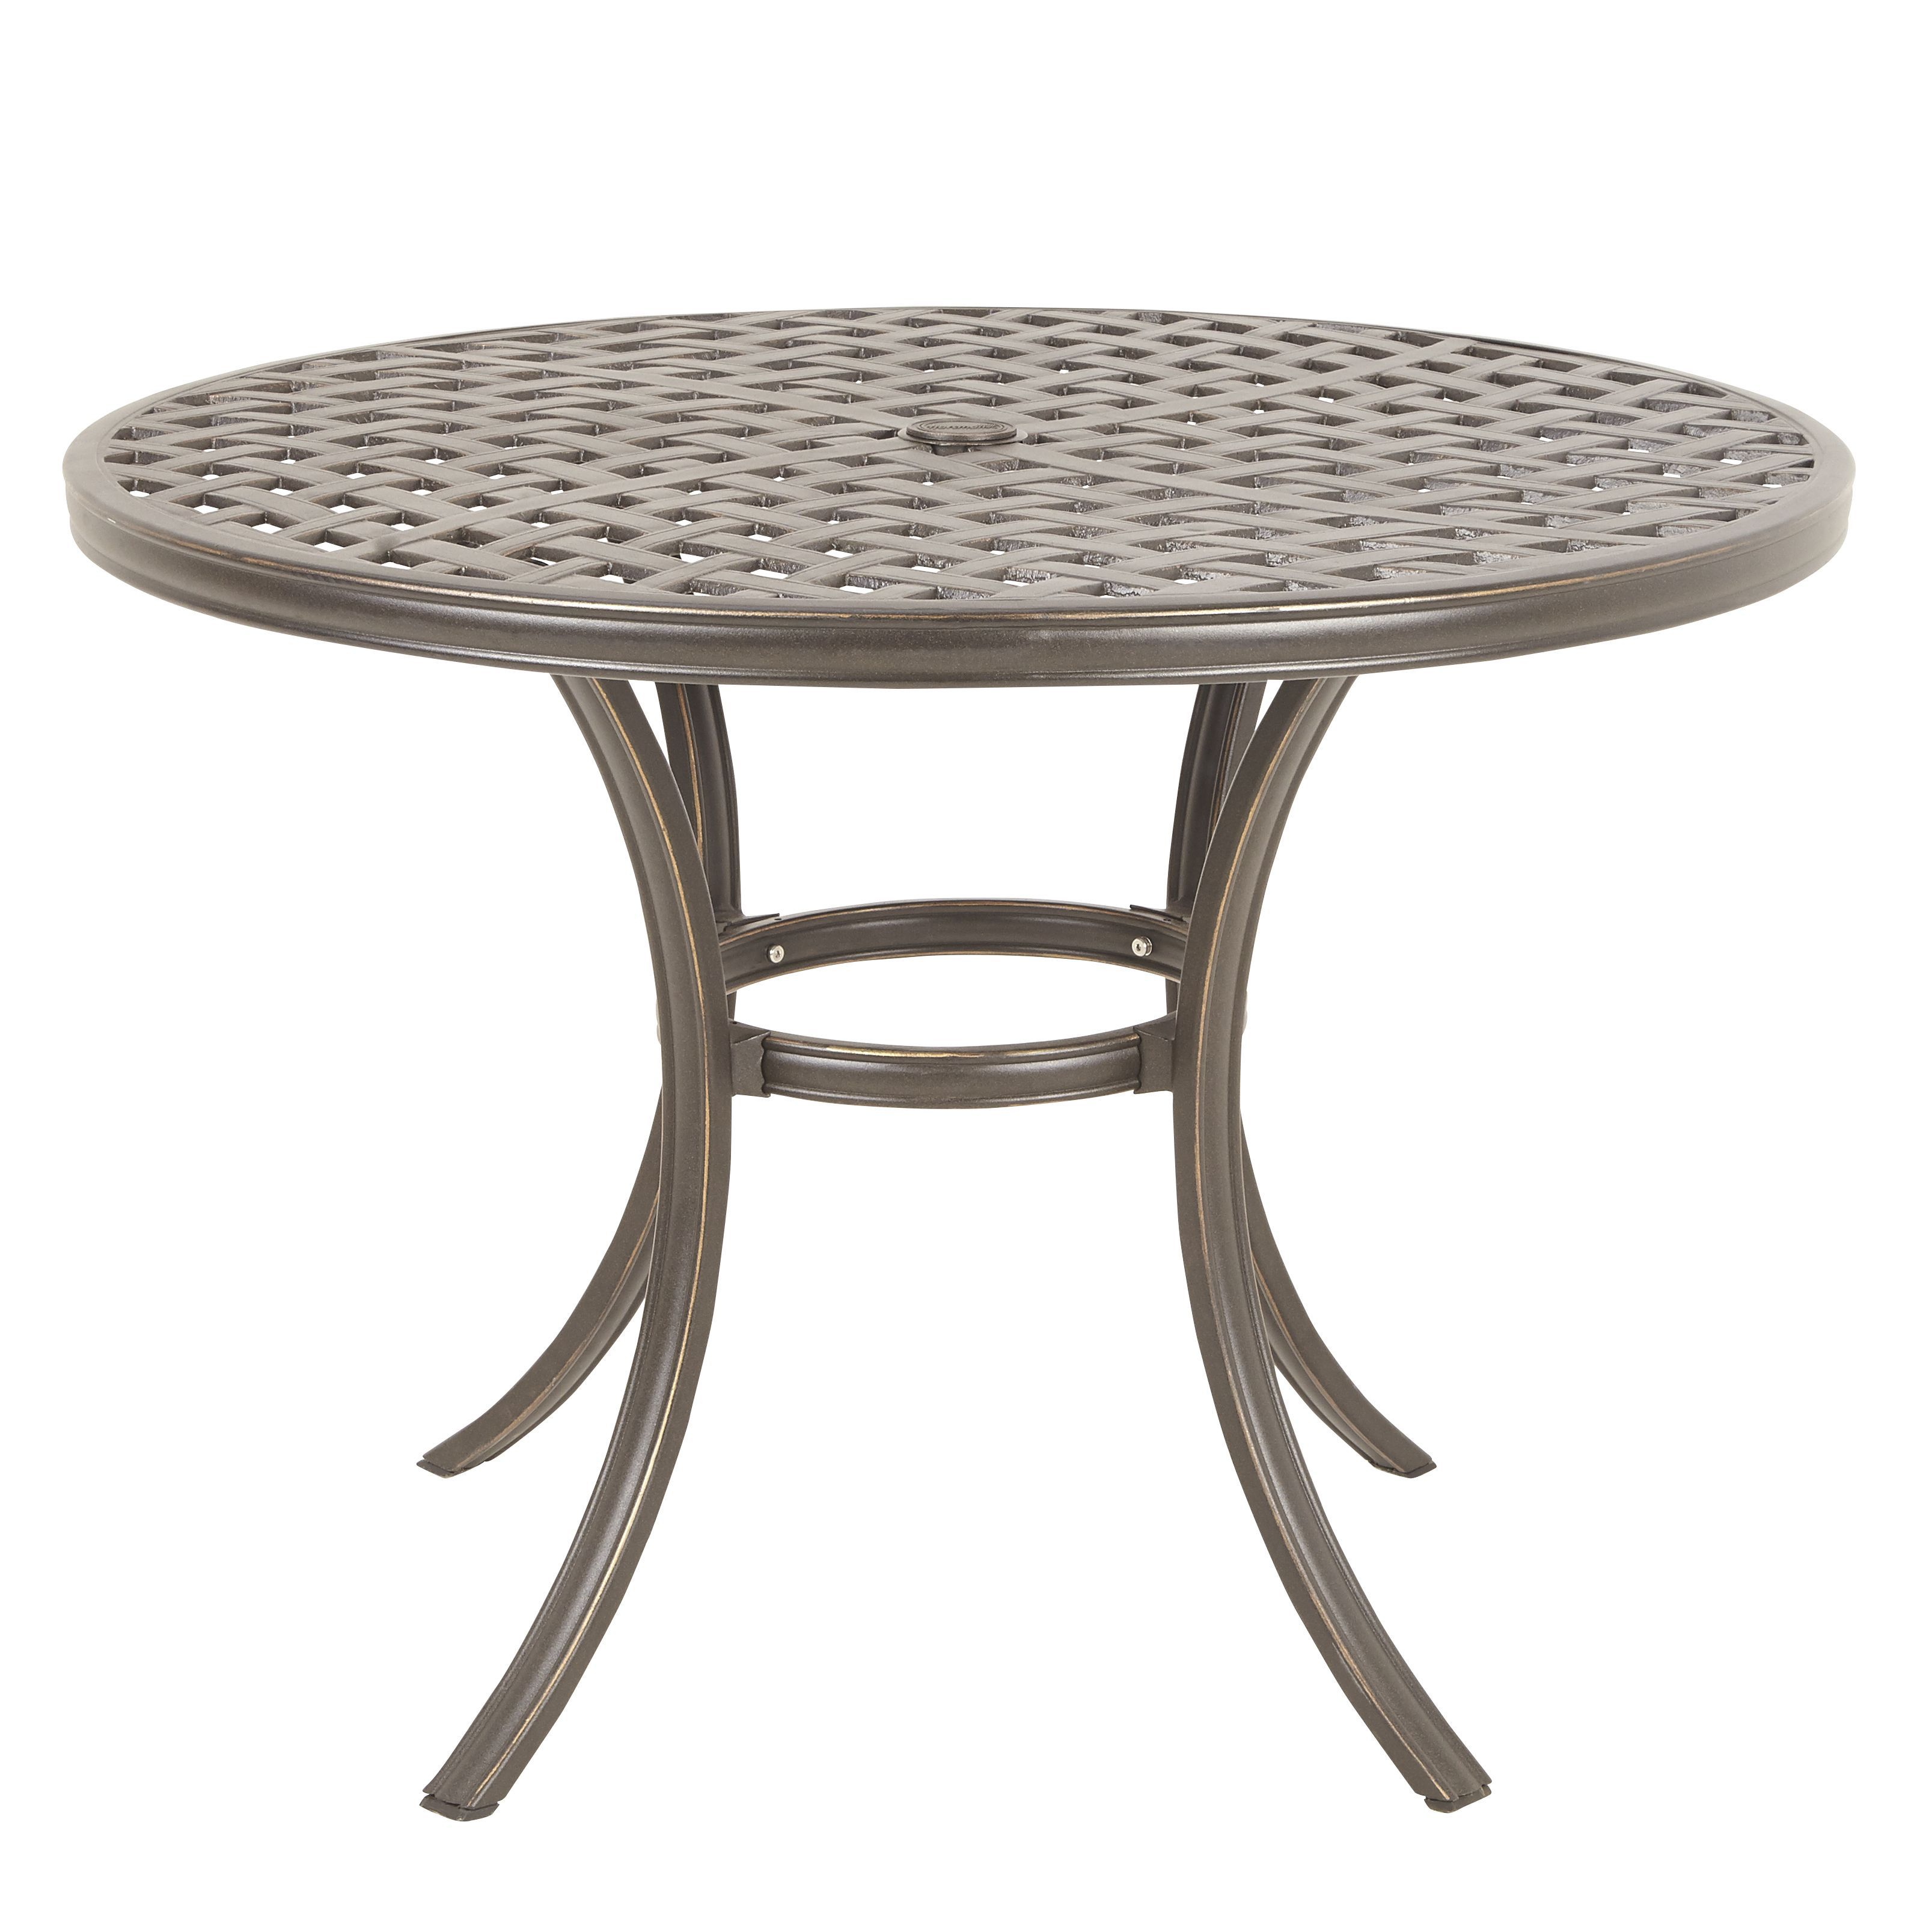 Ripley Metal 4 Seater Dining Table